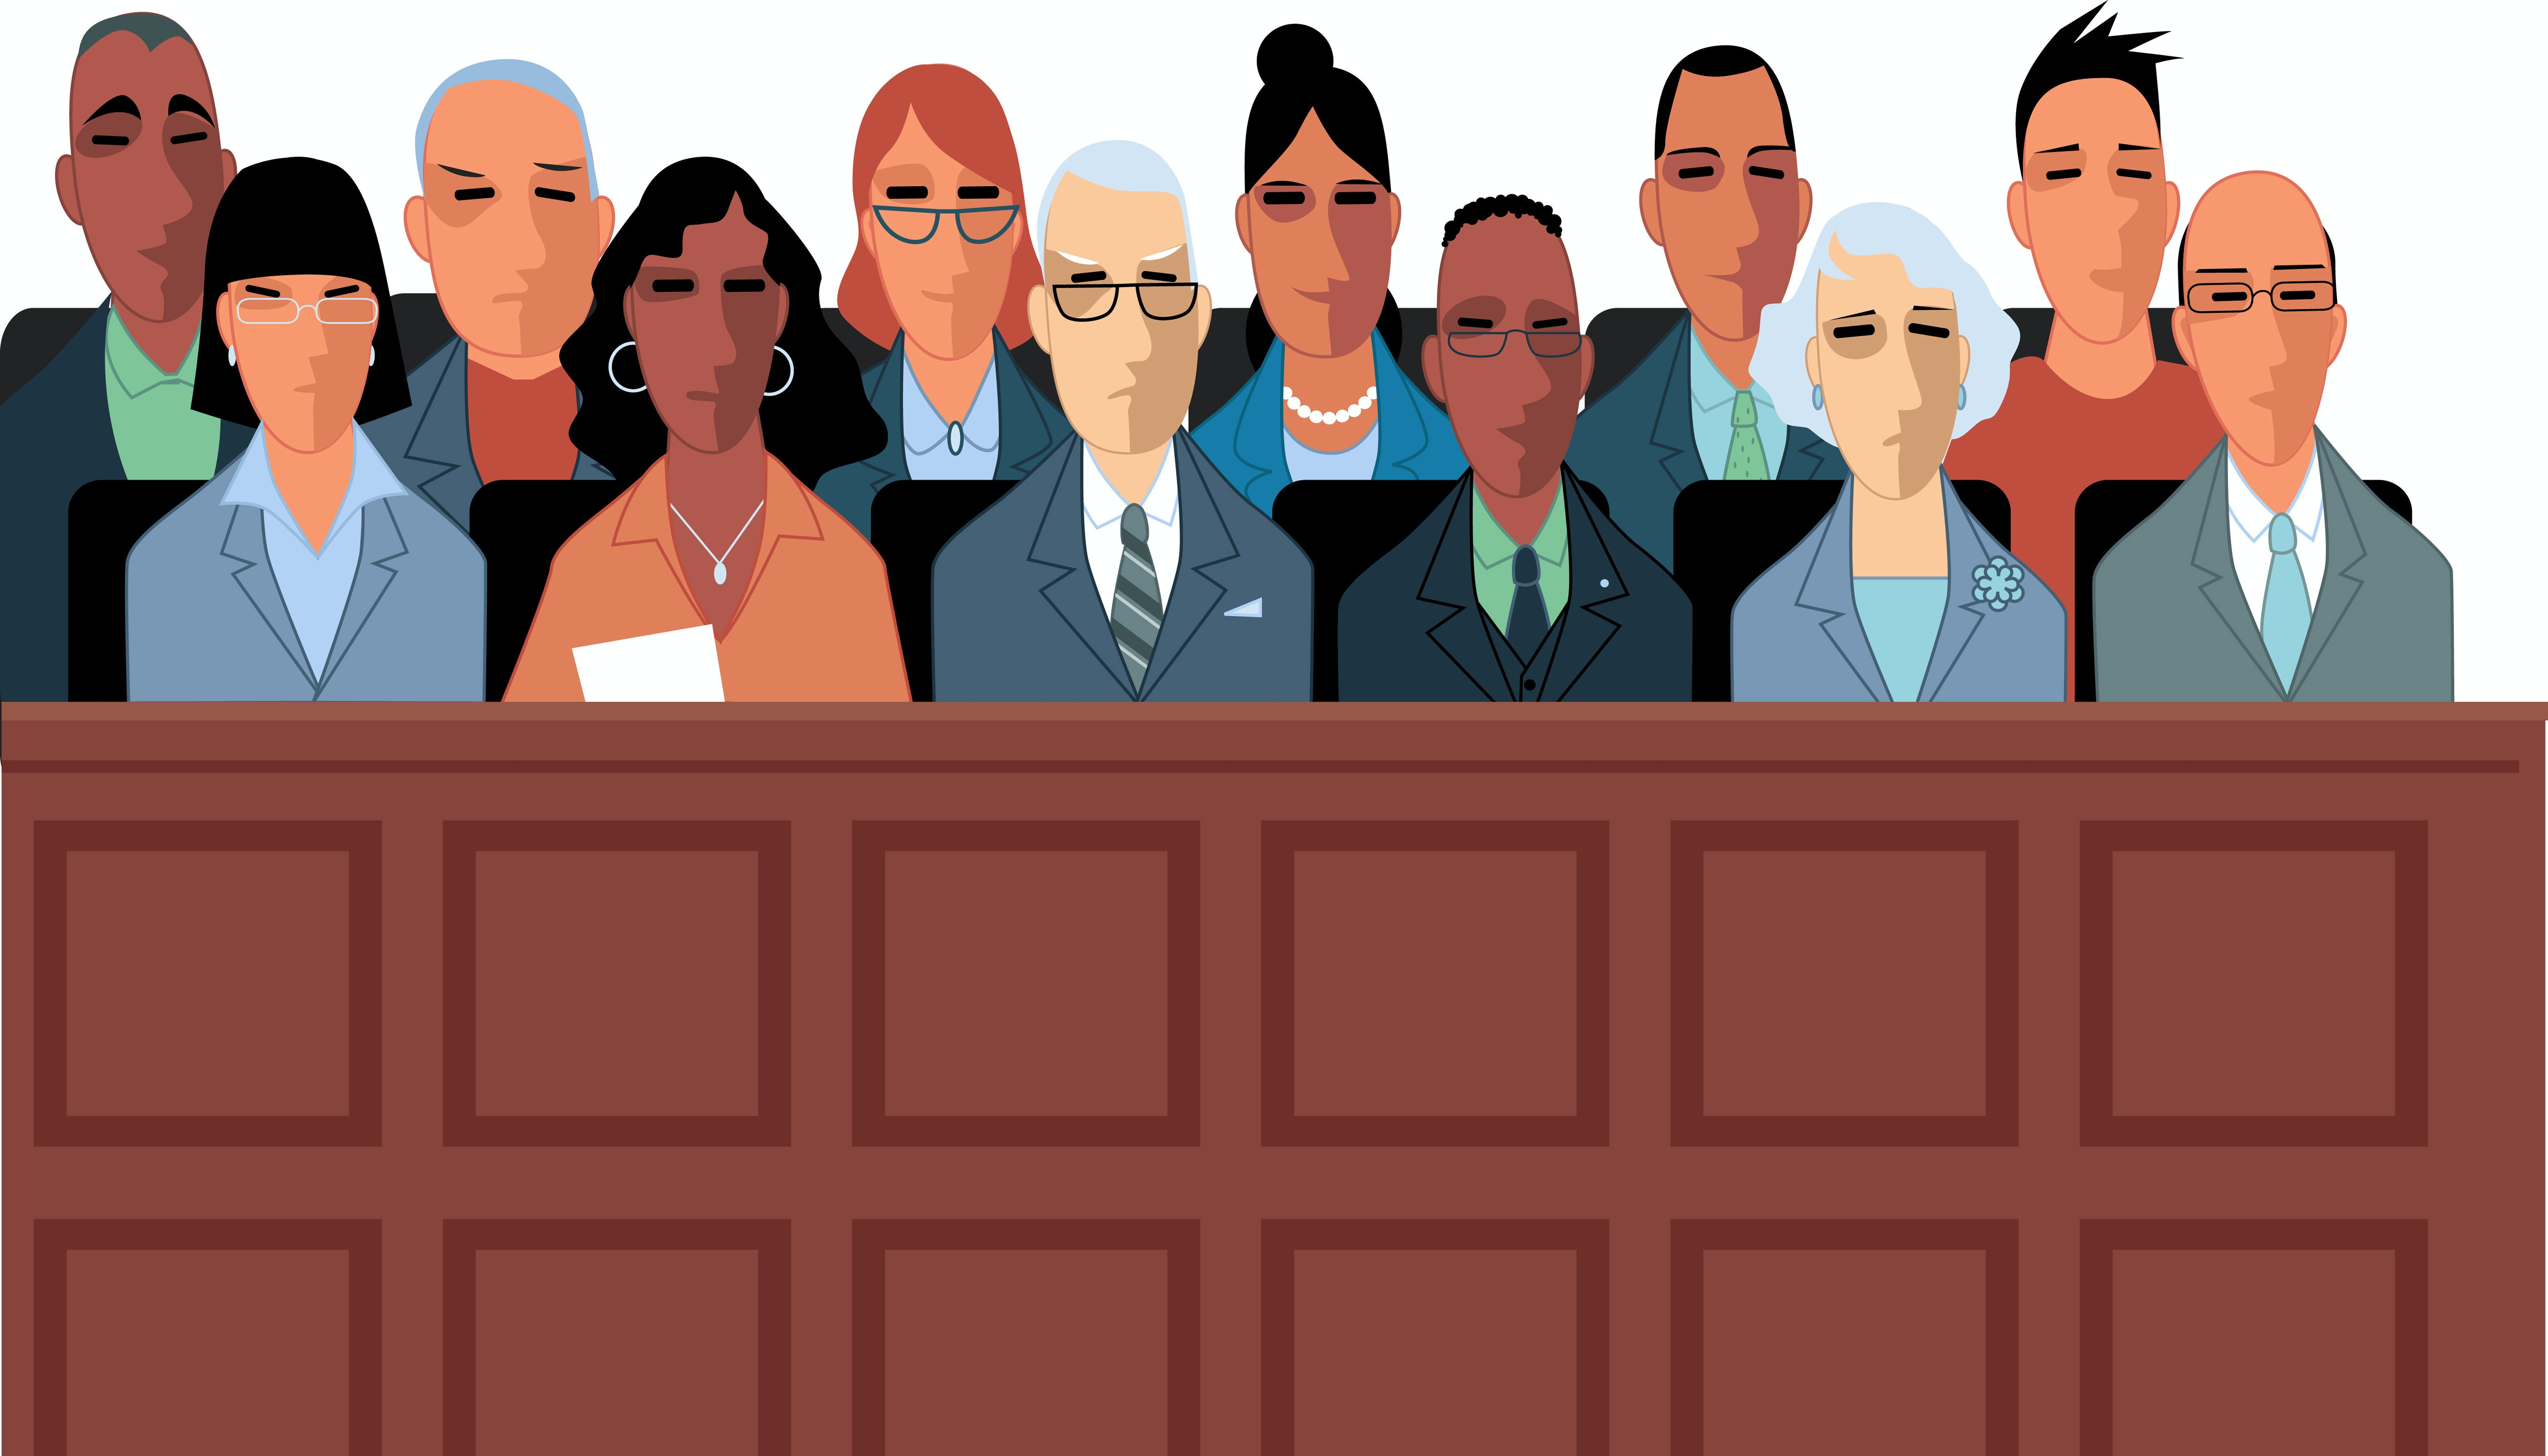 All about juries: why do we actually need them and can they get it 'wrong'?